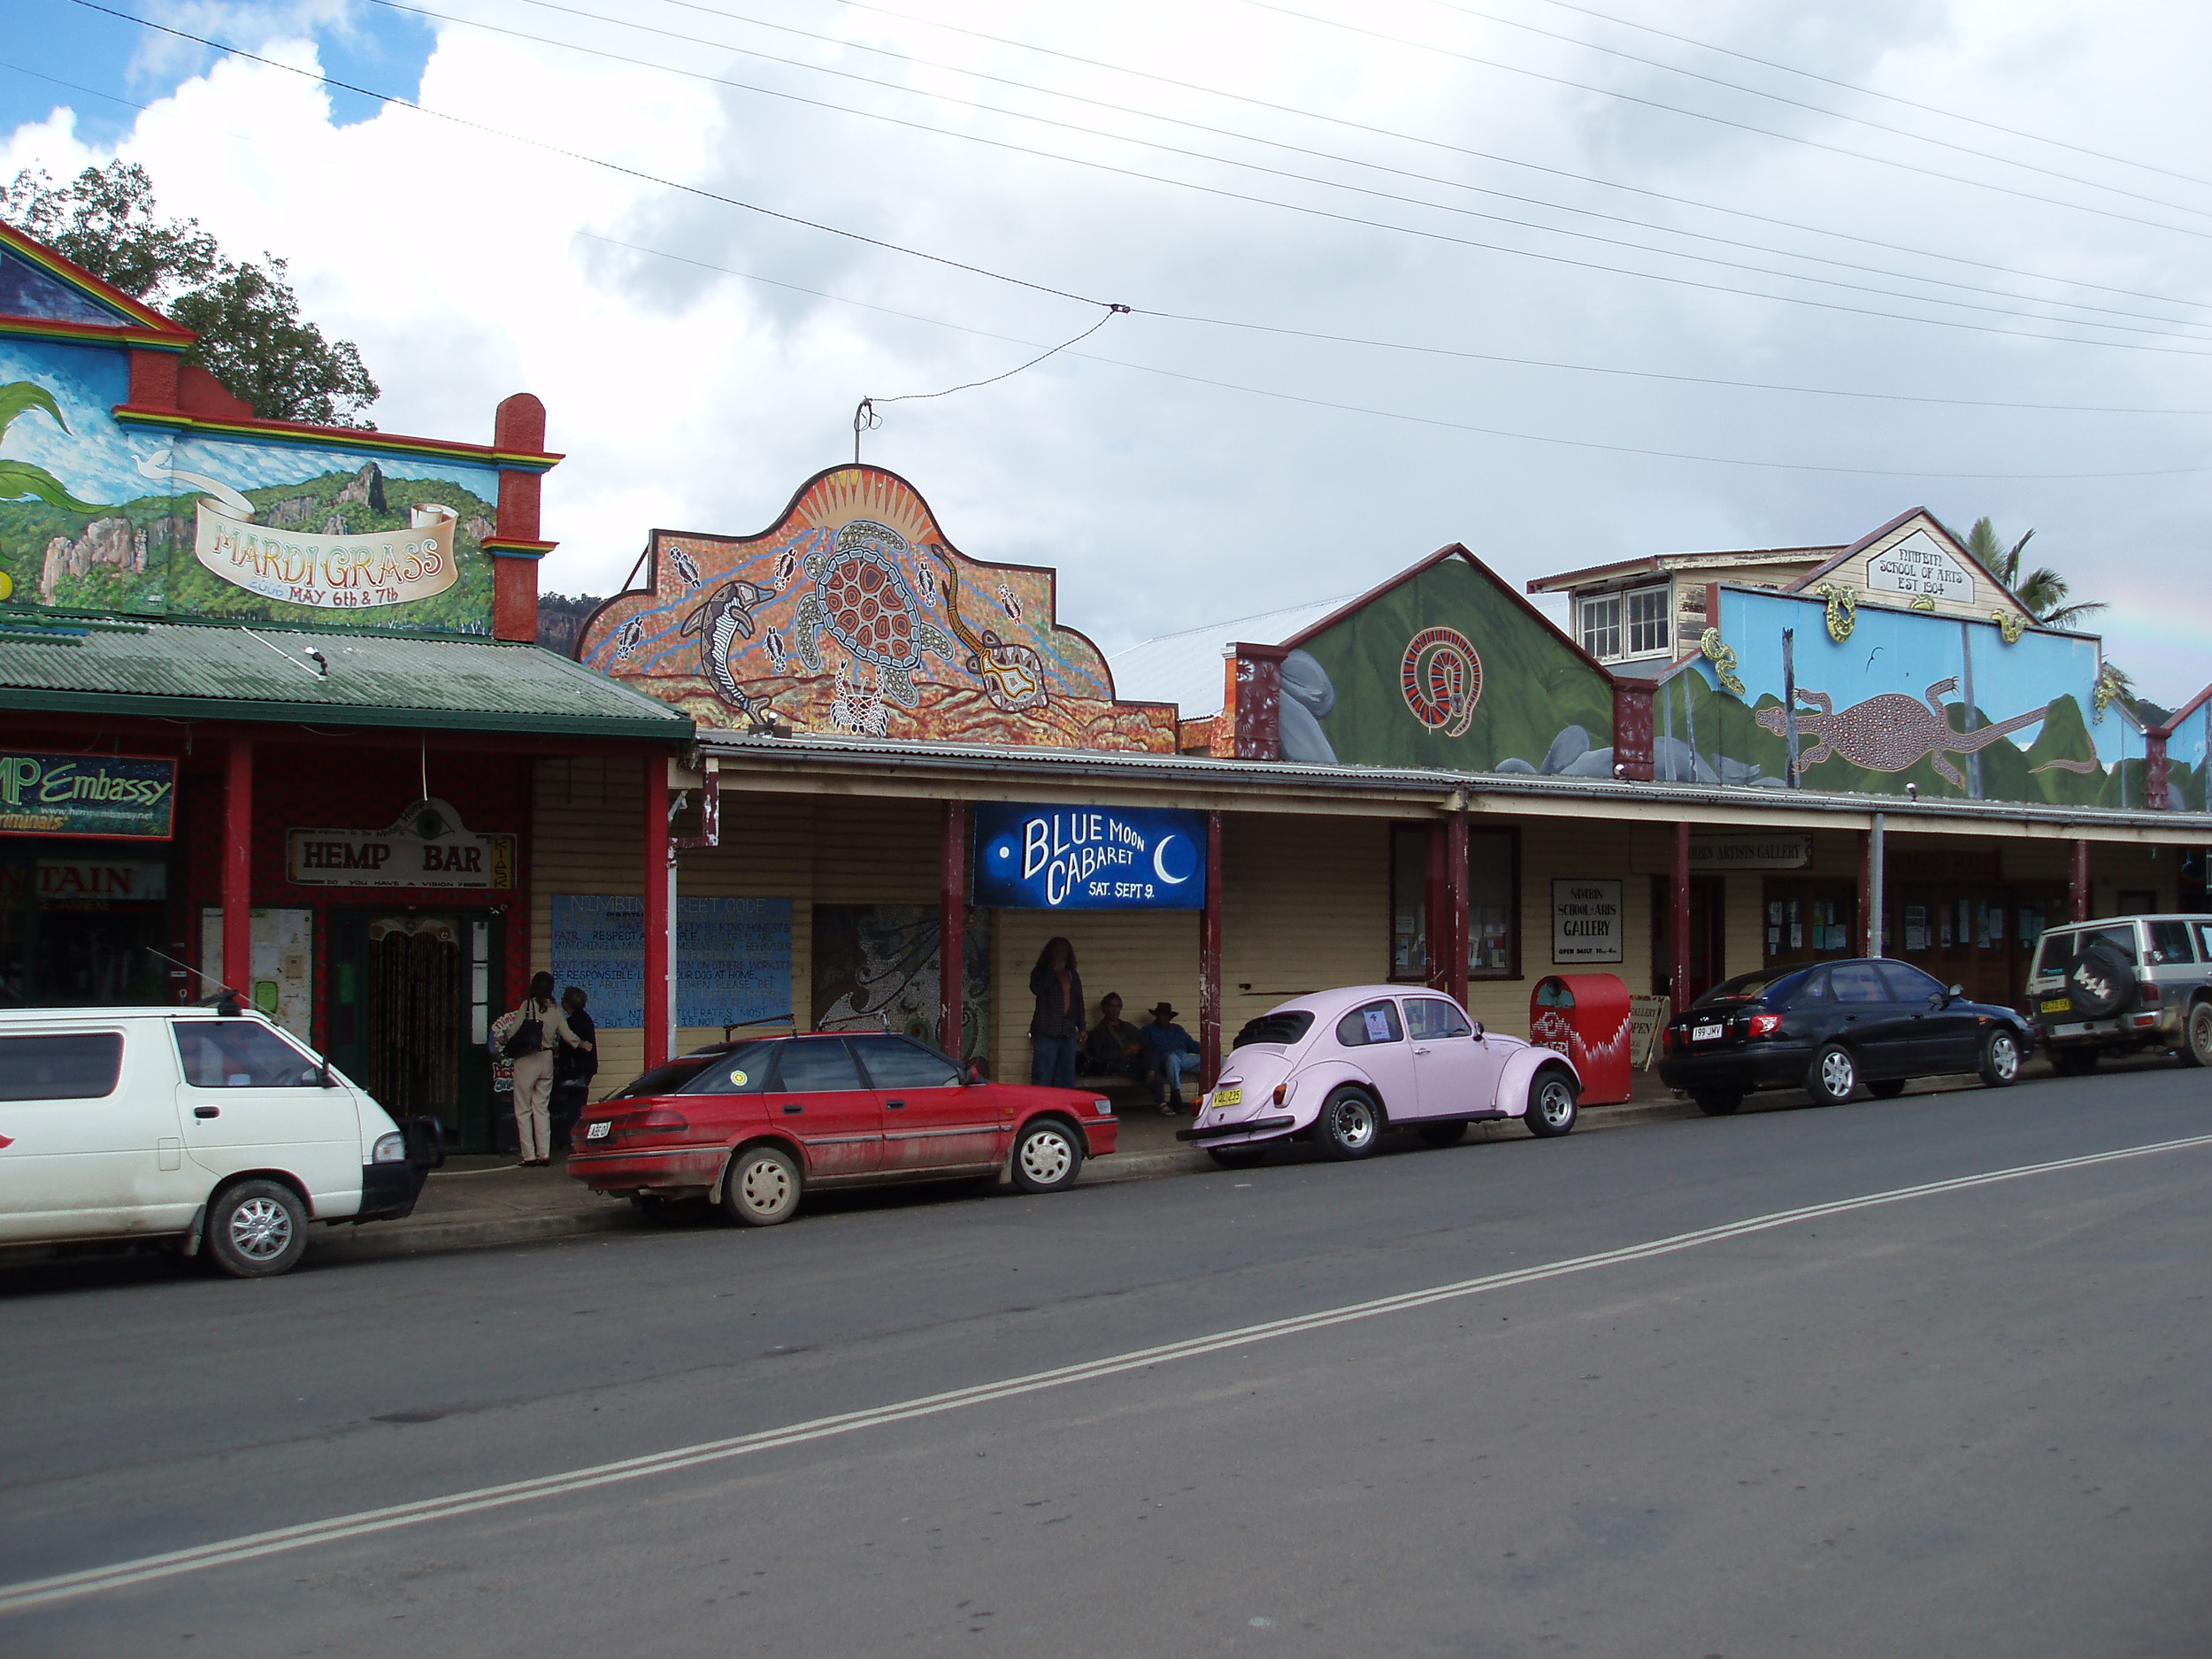 shops along the sides of nimbins main street, nimbin famous for its hippy culture